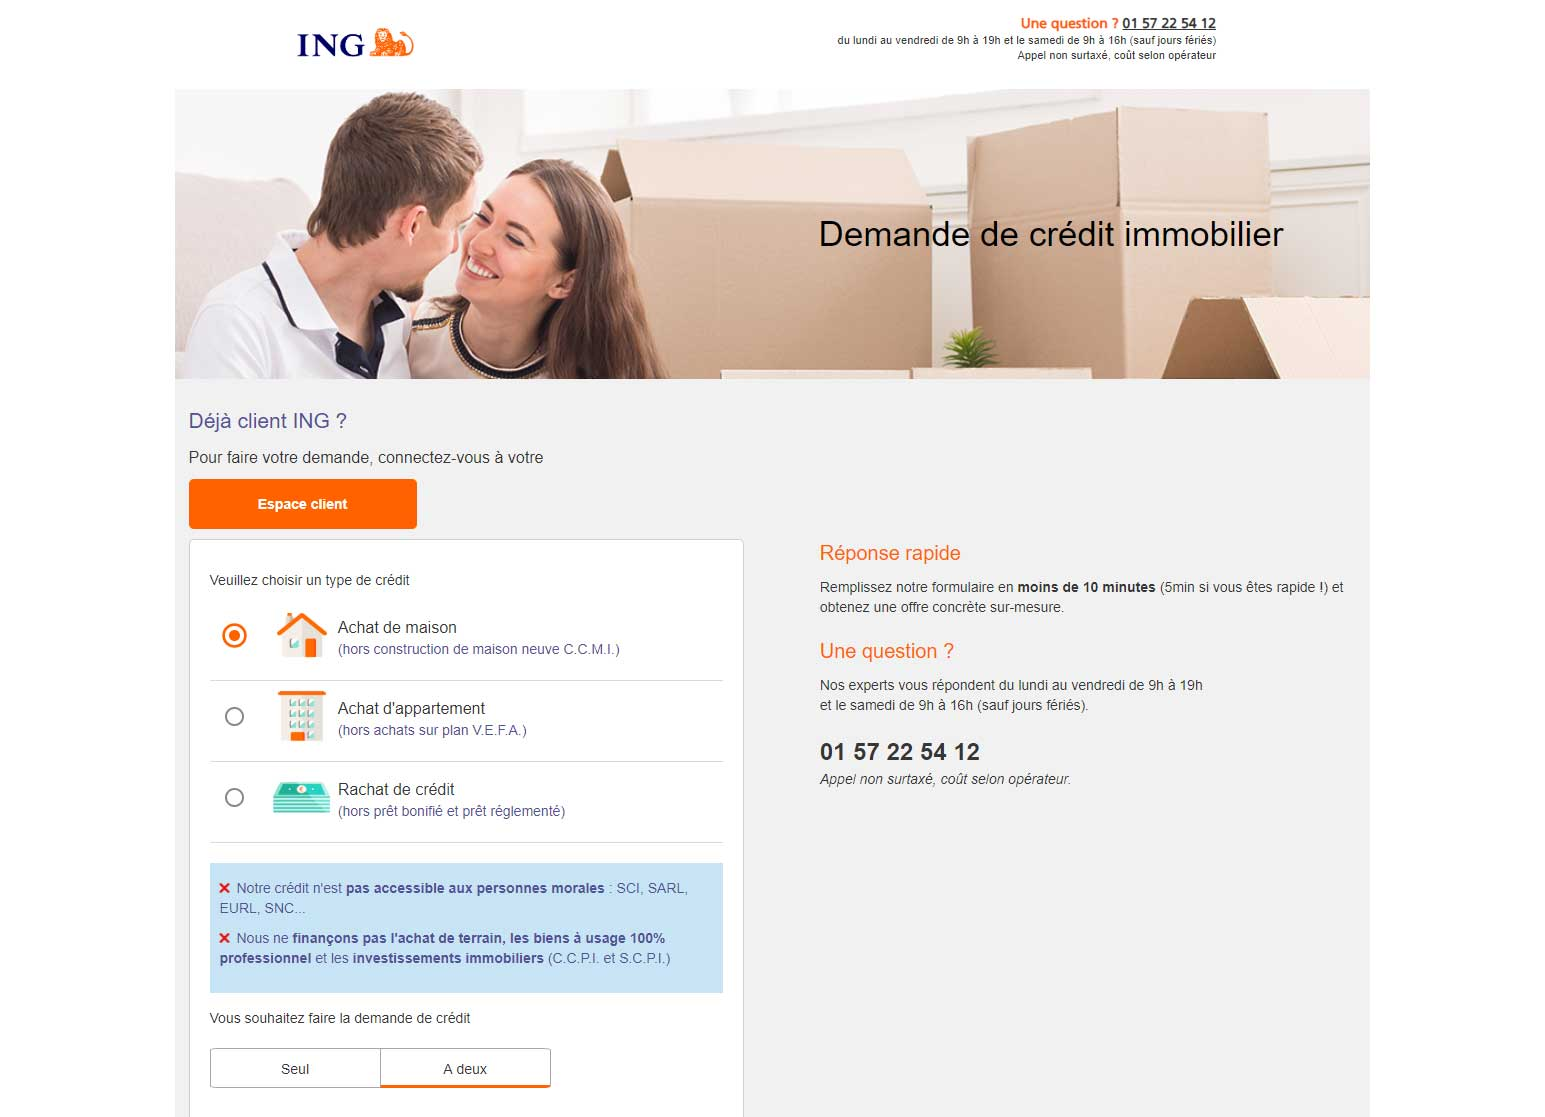 Crédit immobilier ING